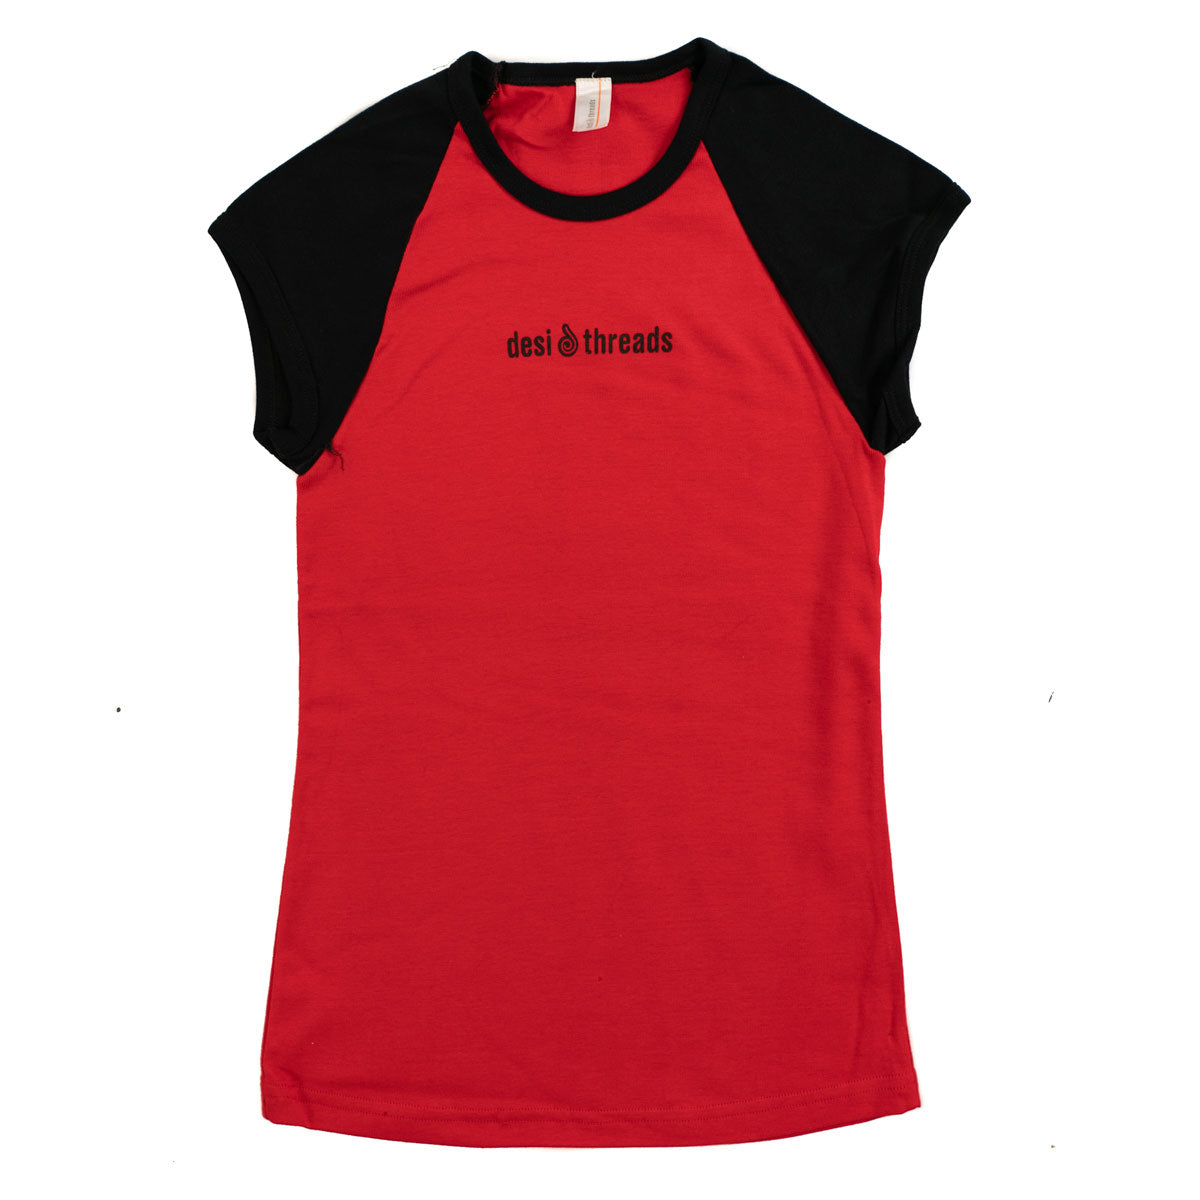 Desi Threads Red Reglan T-shirt